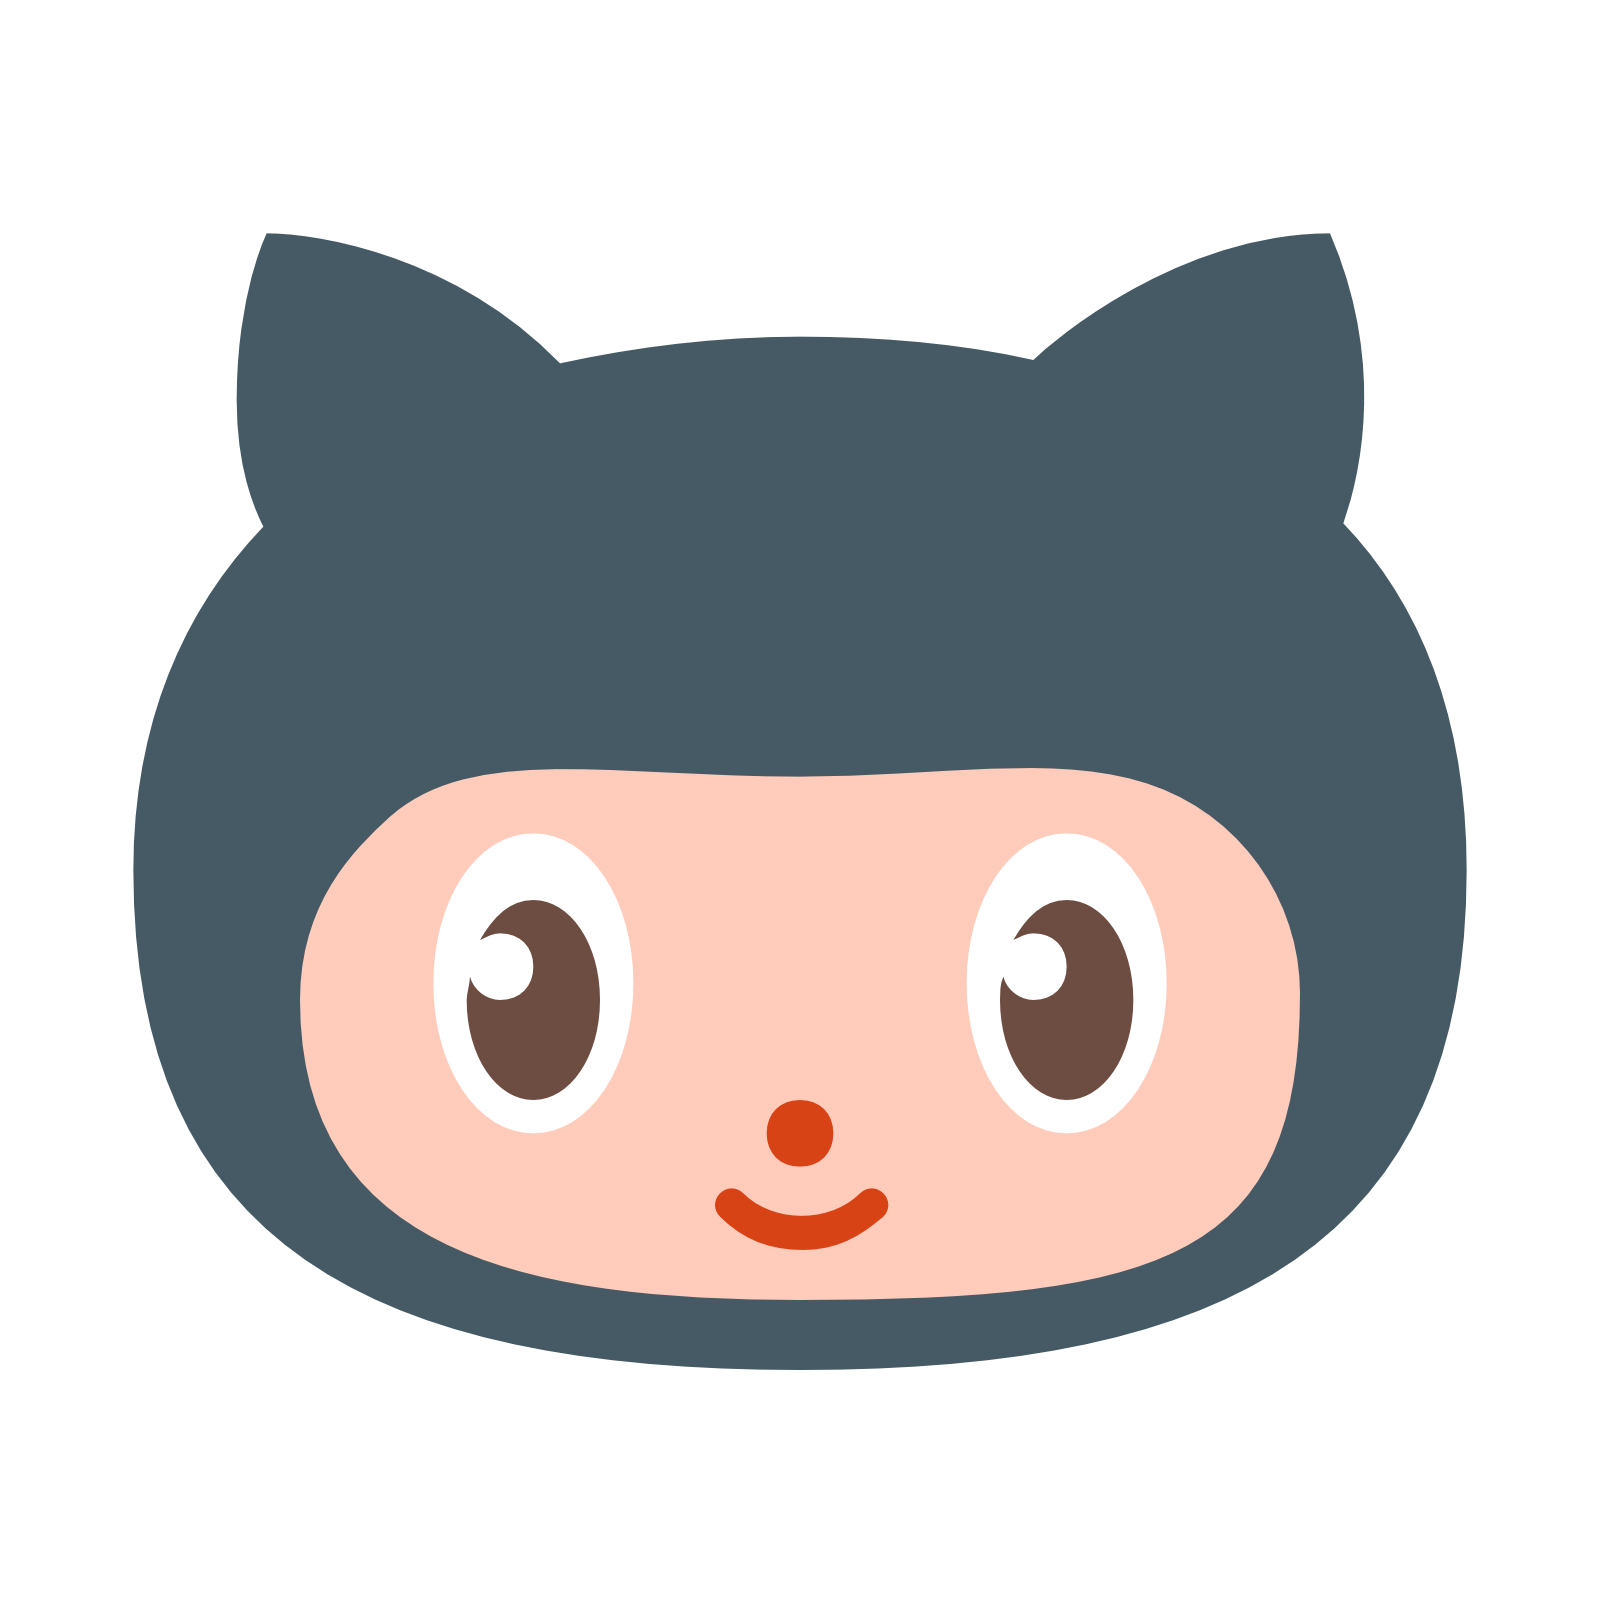 Octocat Icon. Png 50 Px - Github Octocat, Transparent background PNG HD thumbnail